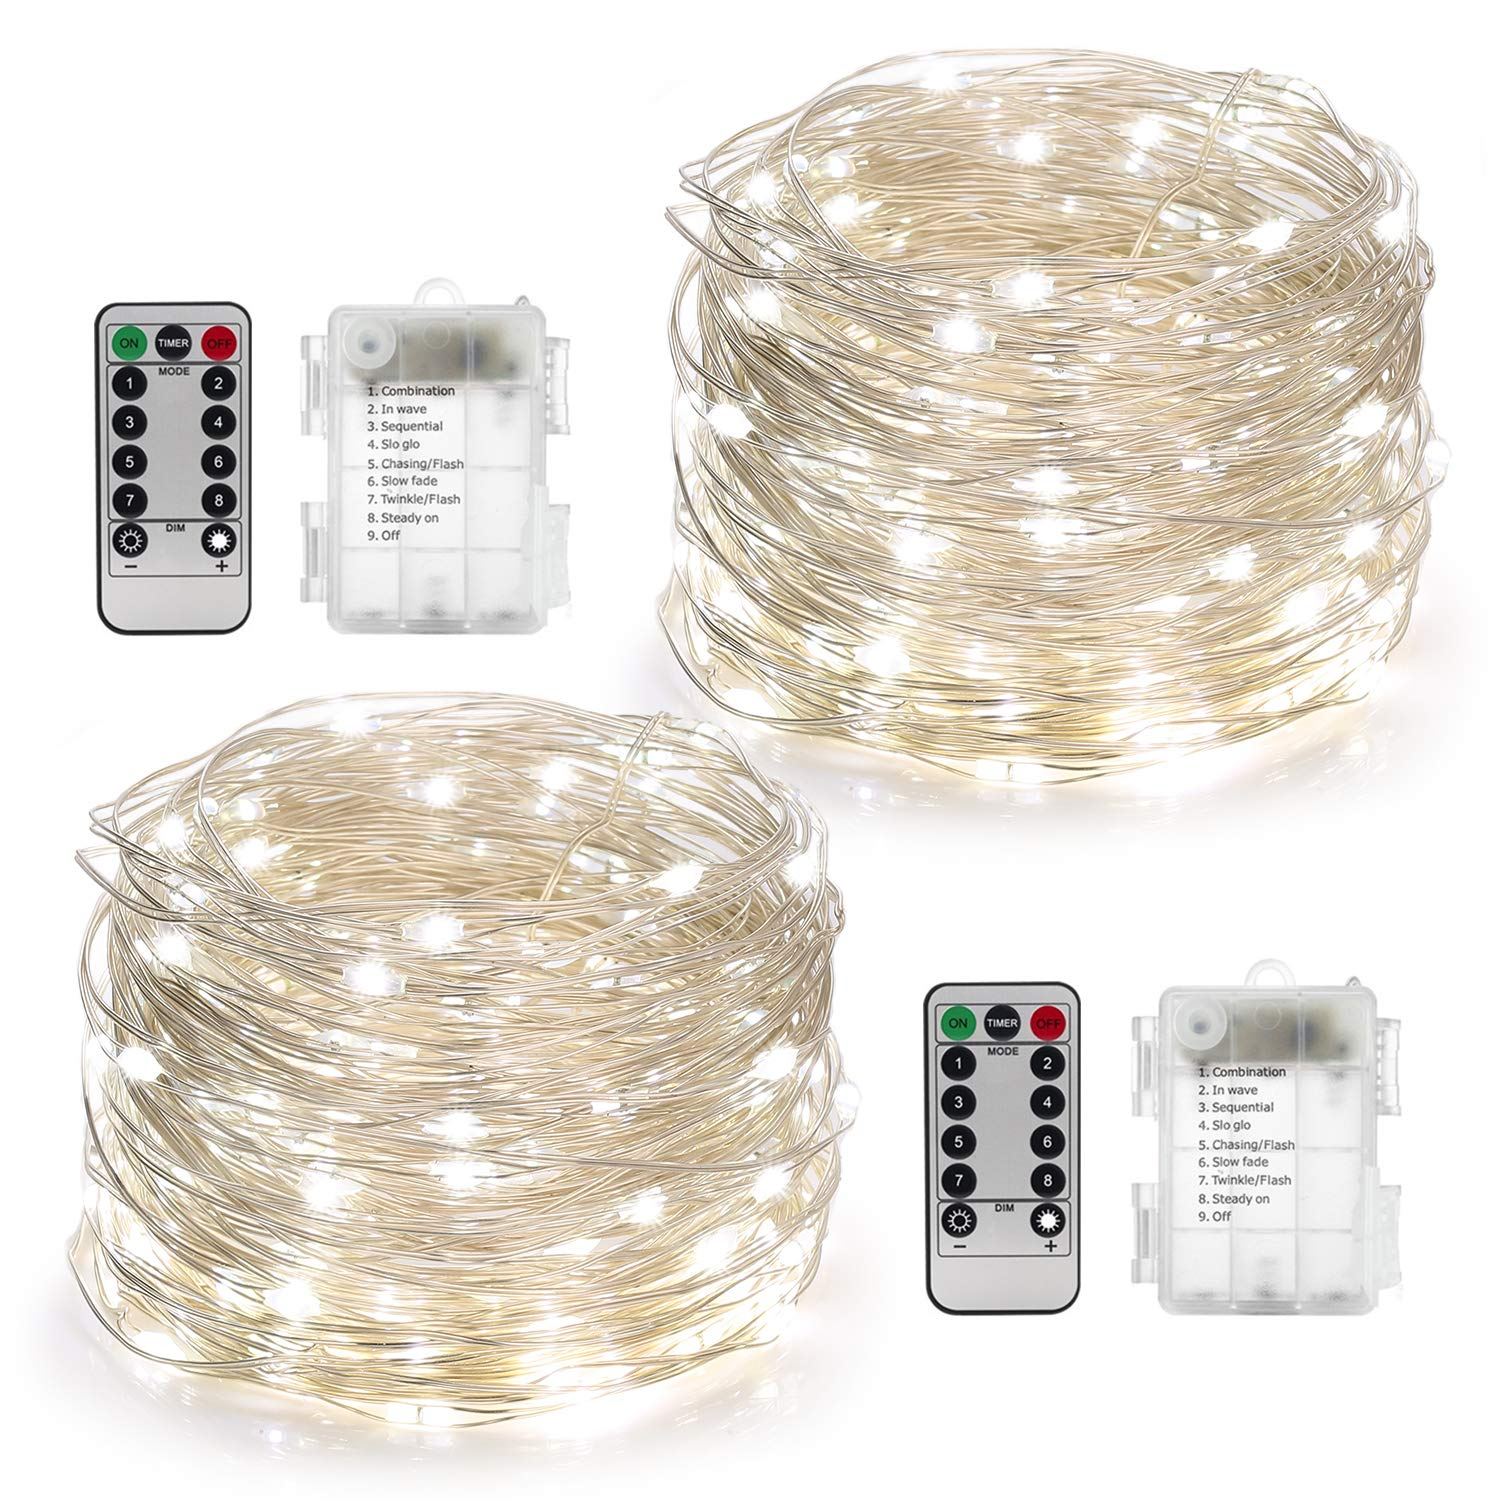 YIHONG 2 Set Fairy Lights Battery Operated 50LED String Lights Remote Control Timer Twinkle String Lights 8 Modes 16.4 Feet Silver Wire Firefly Lights --White by YIHONG